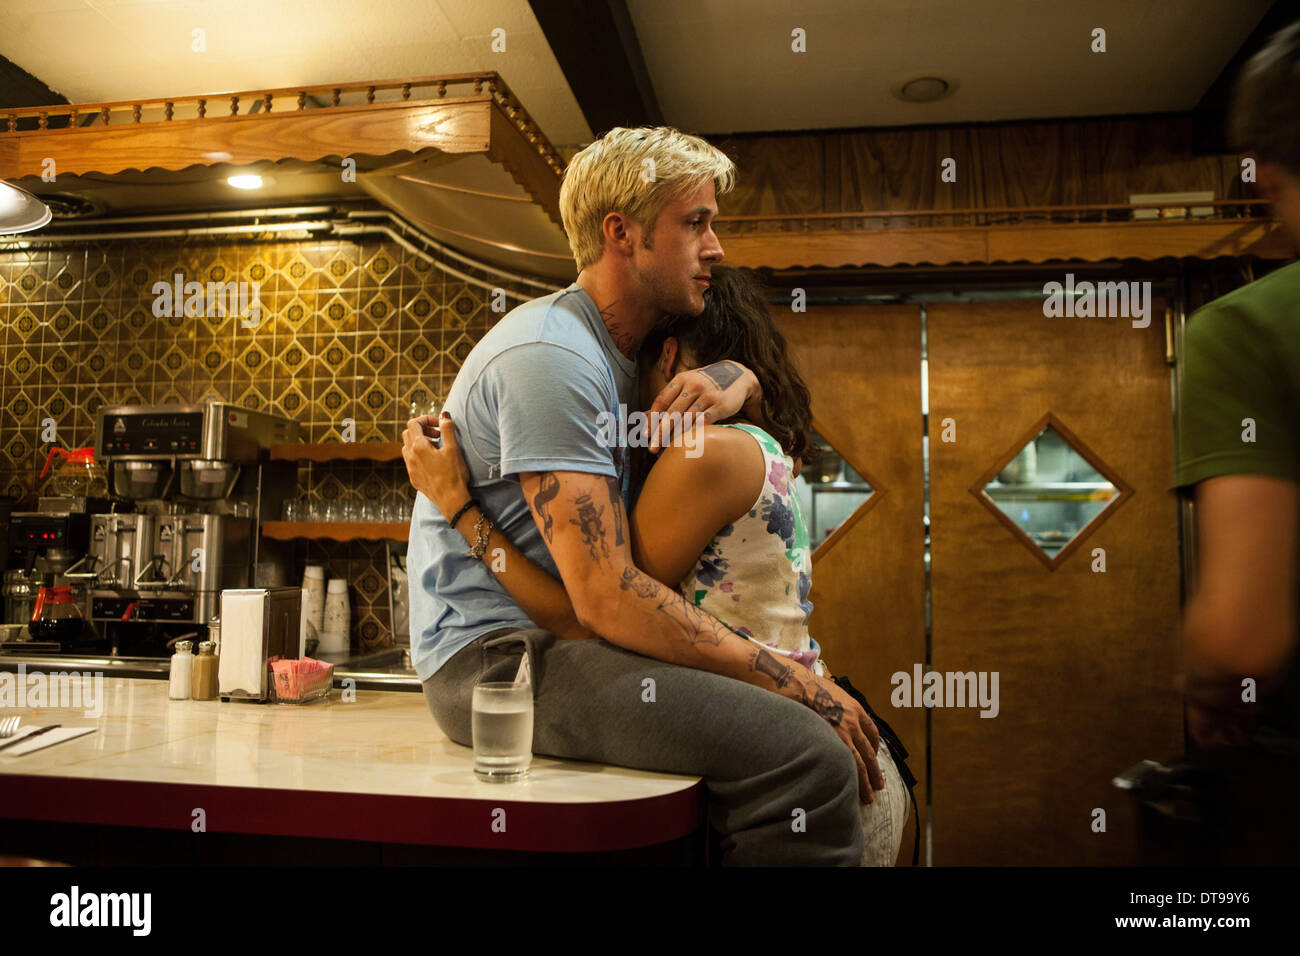 Download Film The Place Beyond The Pines 2012